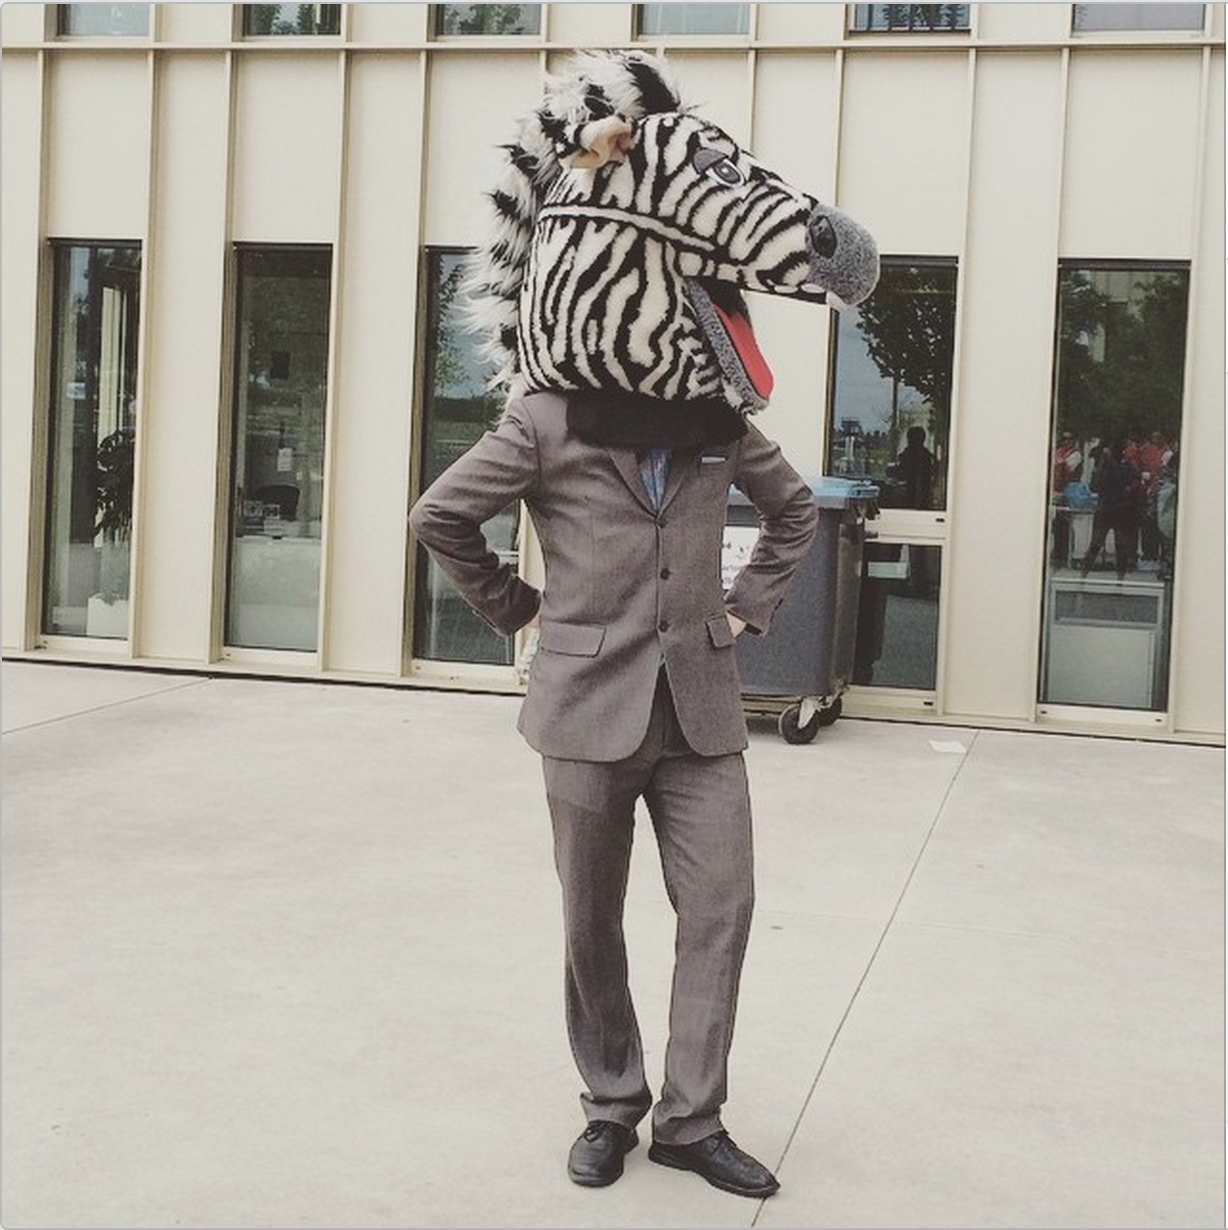 #12.  Keeping it classy at MBAT! The infamous Mr. Zebra prepping for the Casino Royale party...  (via  HECMBAT )